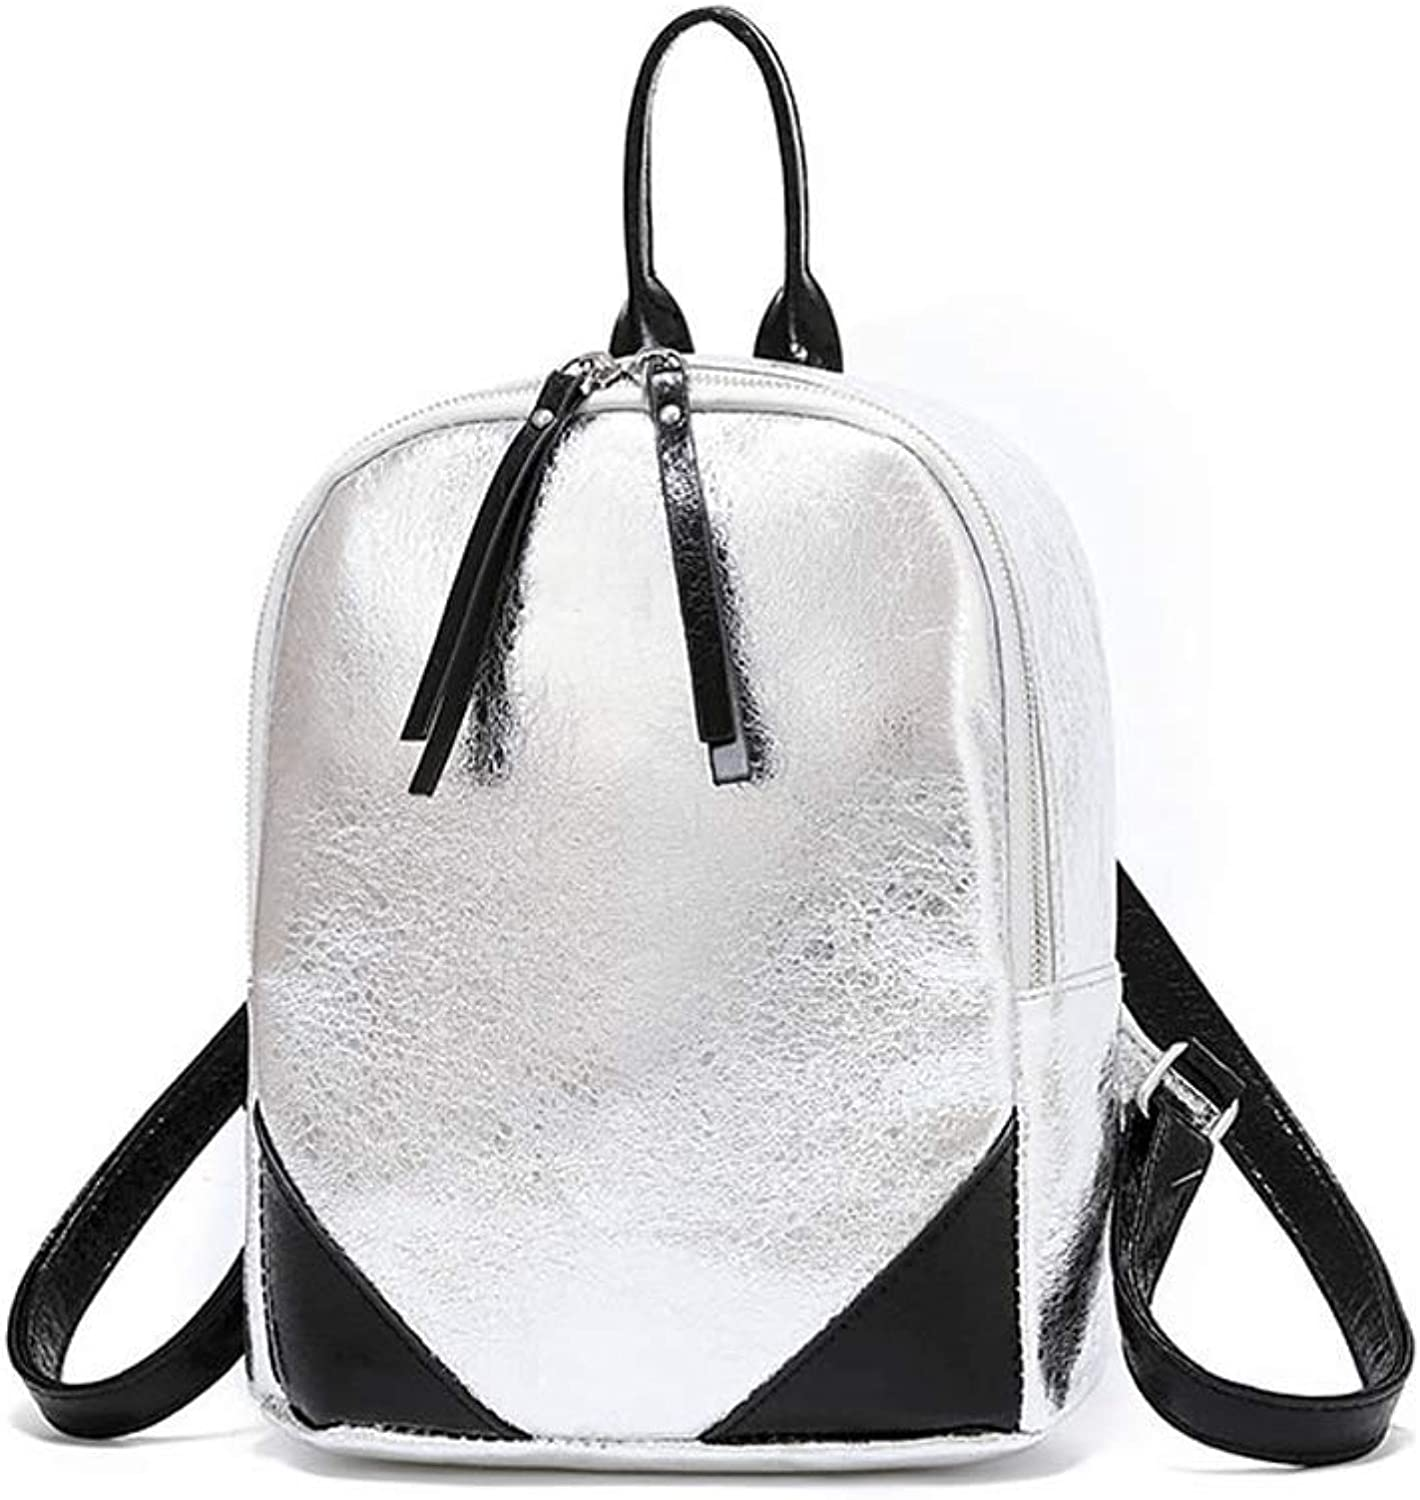 LCSHAN Backpack Shoulders Women's Leather Fashion Wild Travel Leisure (color   Silver)